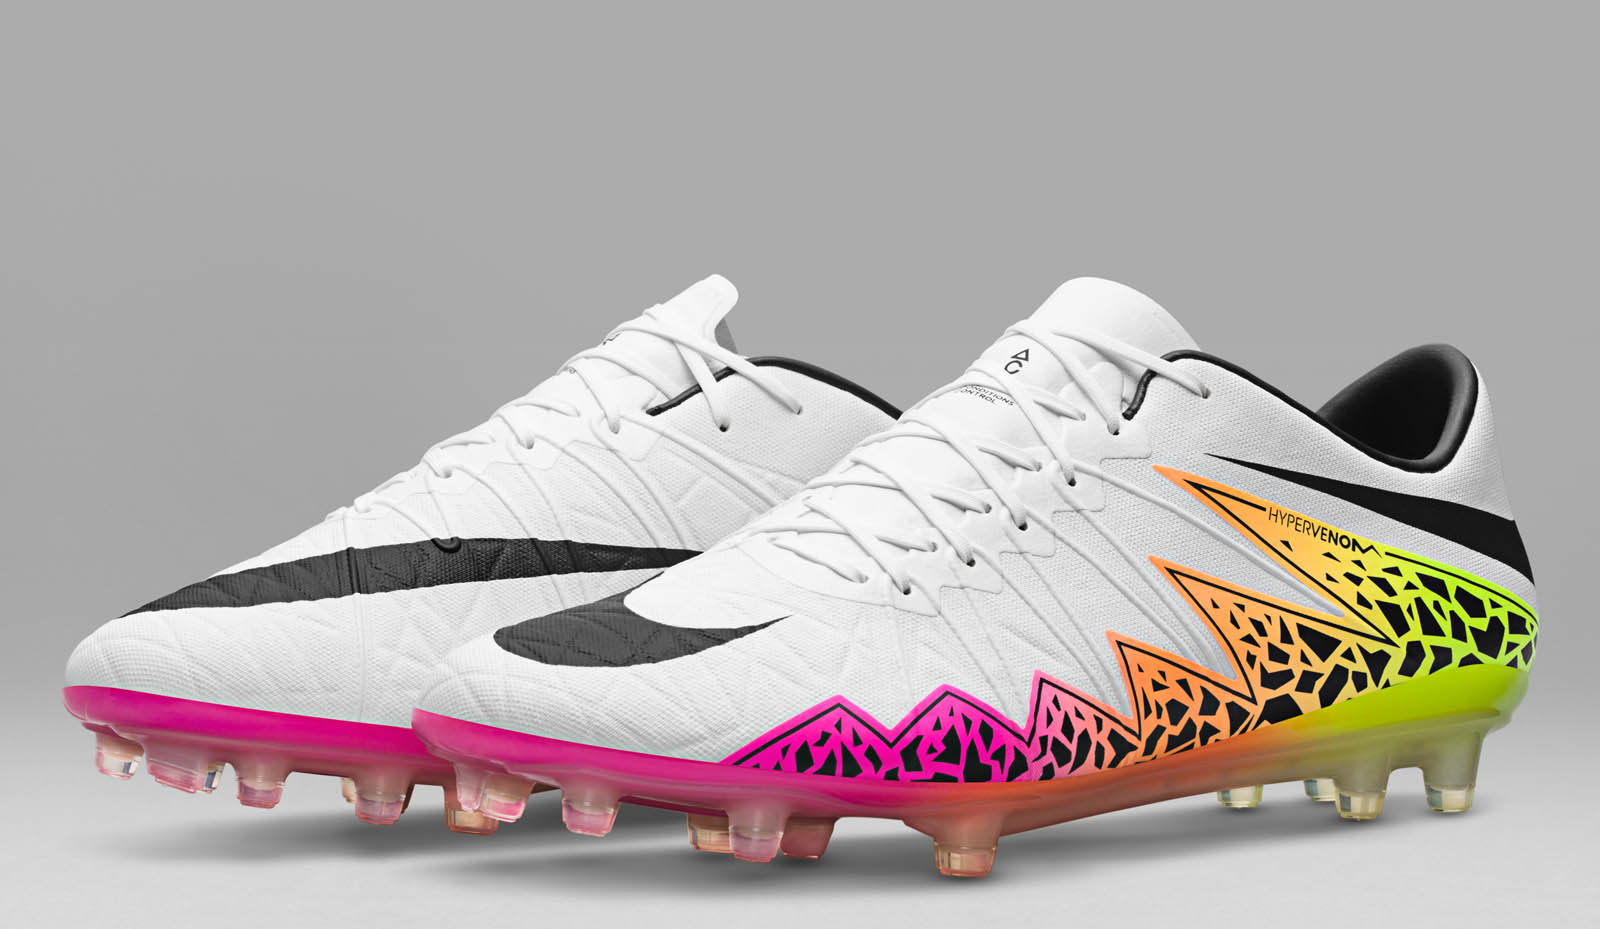 Nike Hypervenom Phinish 2016 Radiant Reveal Boots Released ...